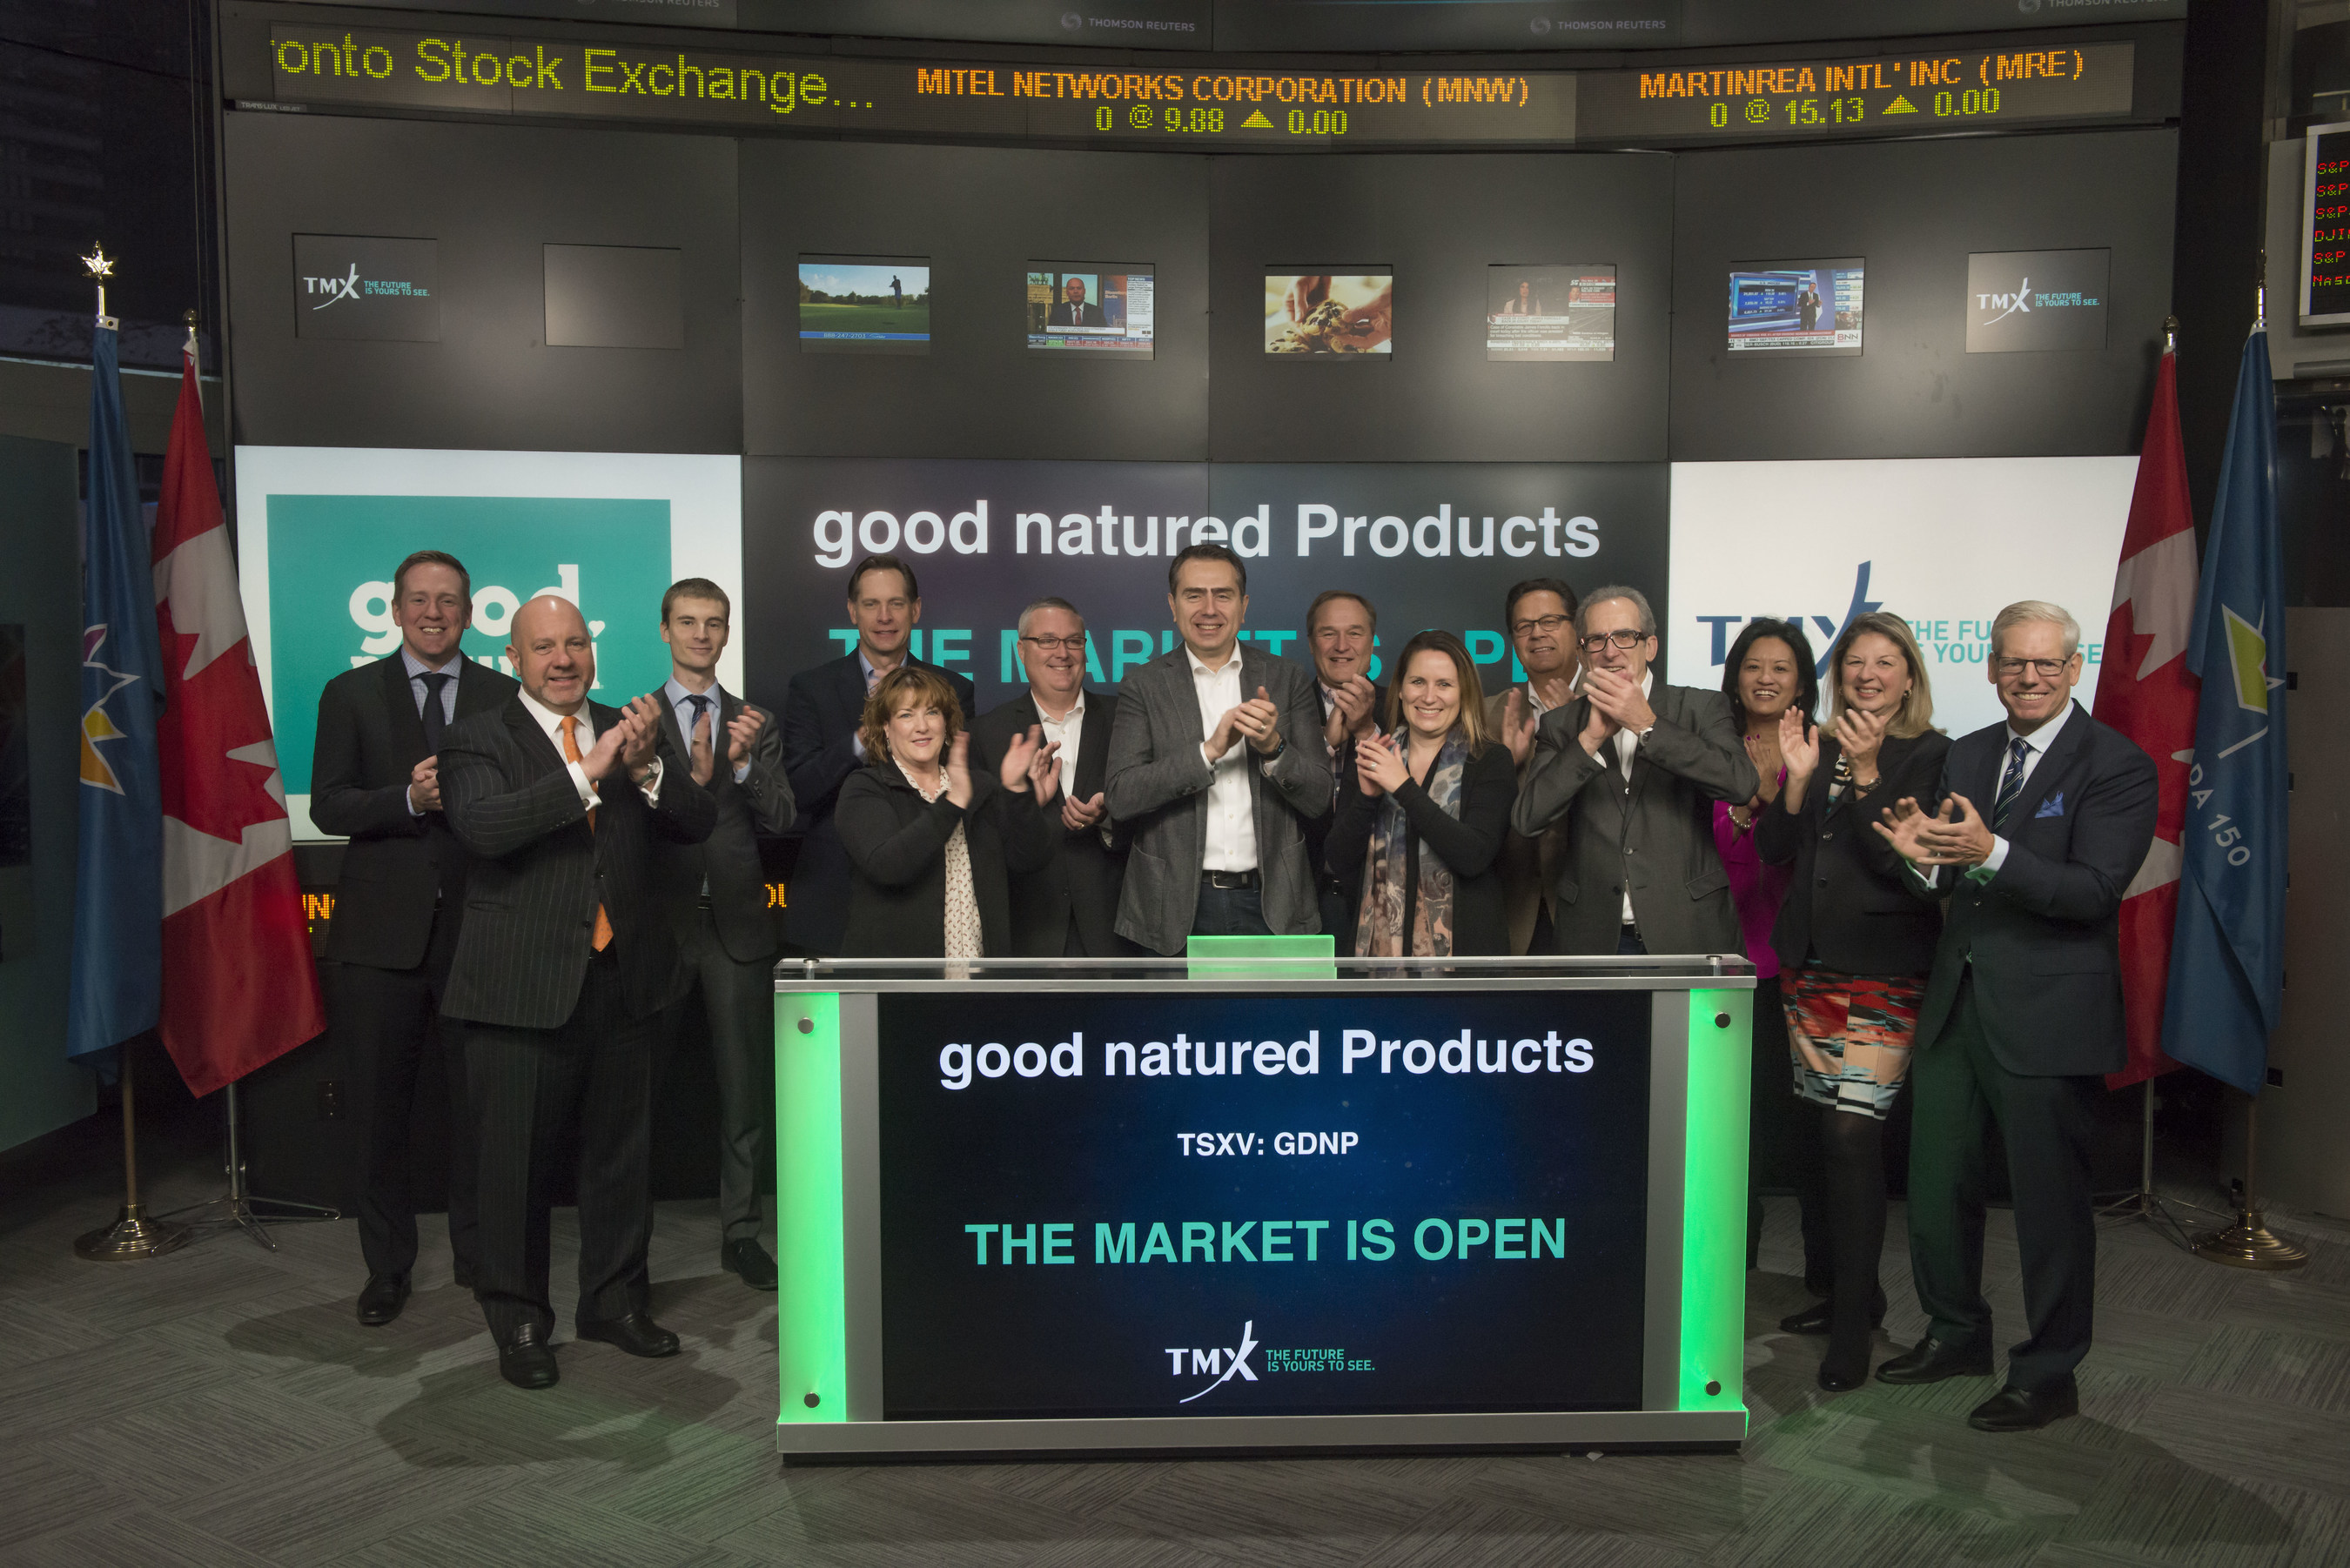 6add0e8da970 TMX Group Limited good natured Products Inc Opens the Market.jpg p publish